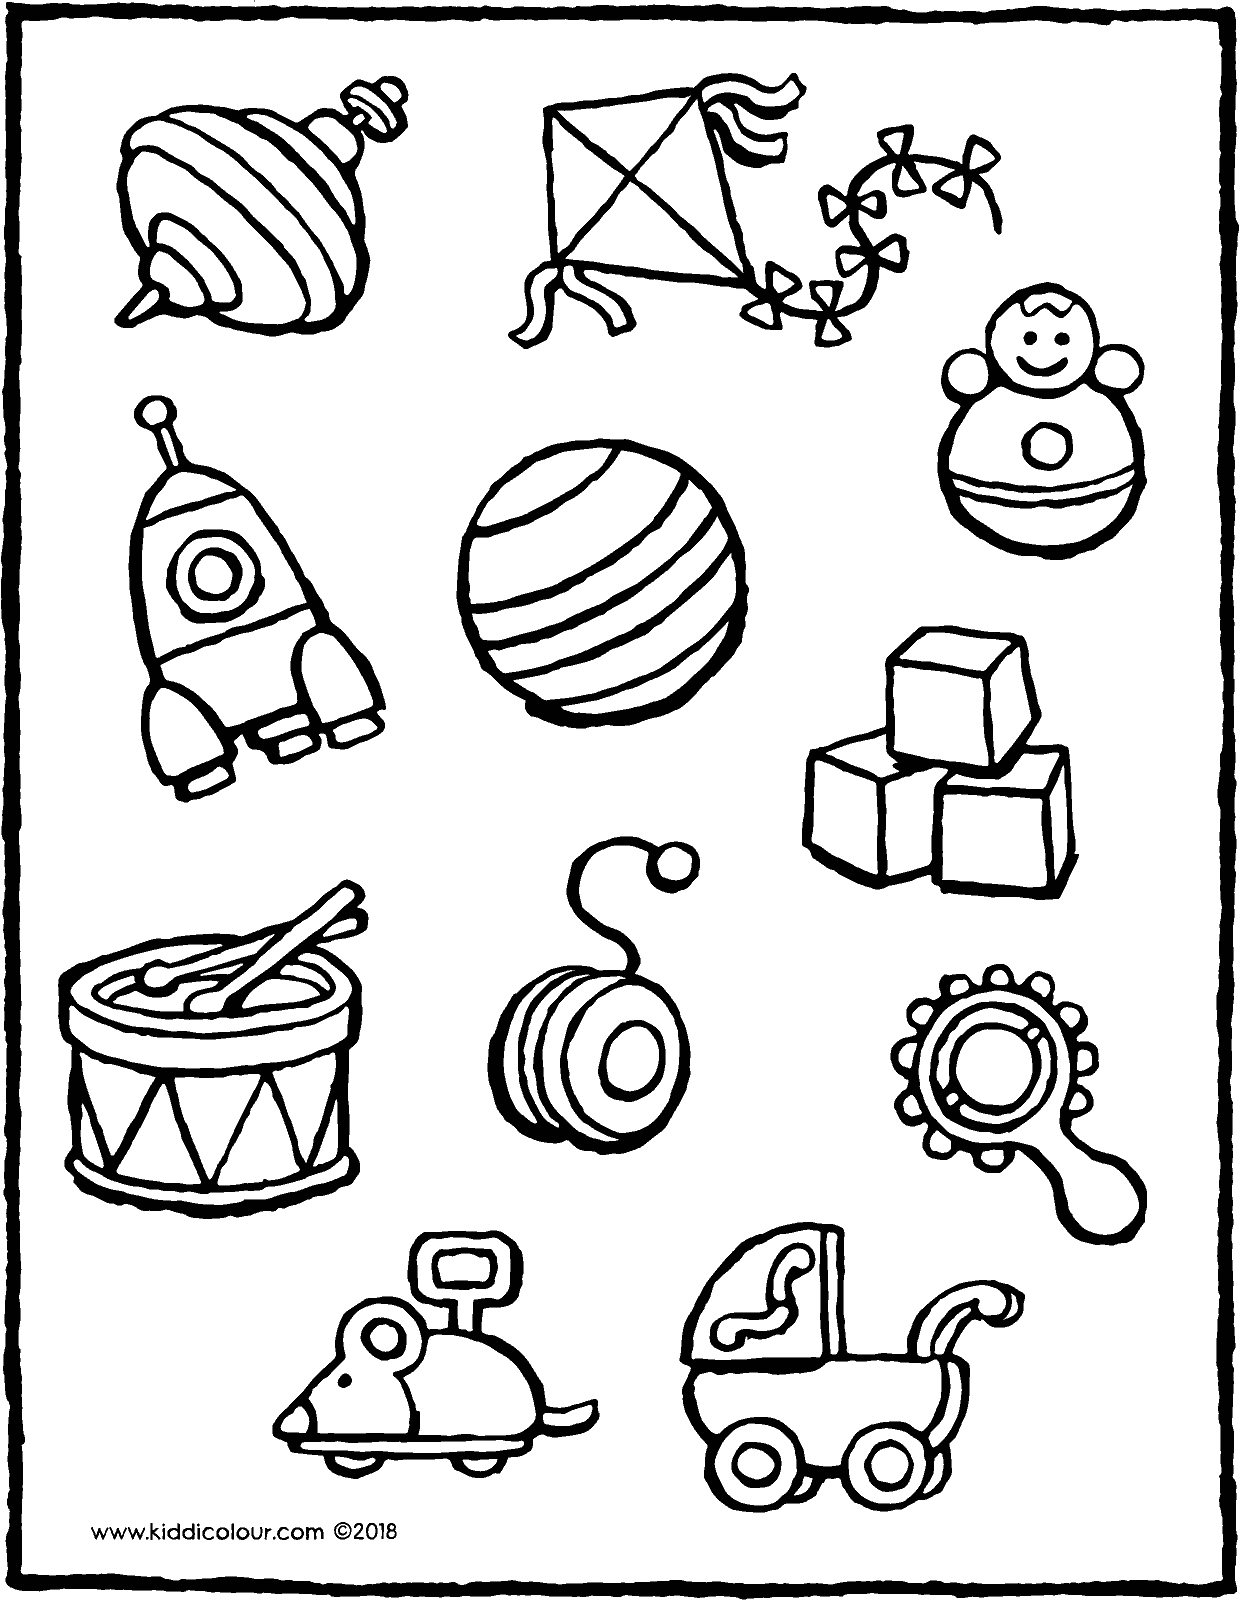 lots of toys colouring page drawing picture 01V